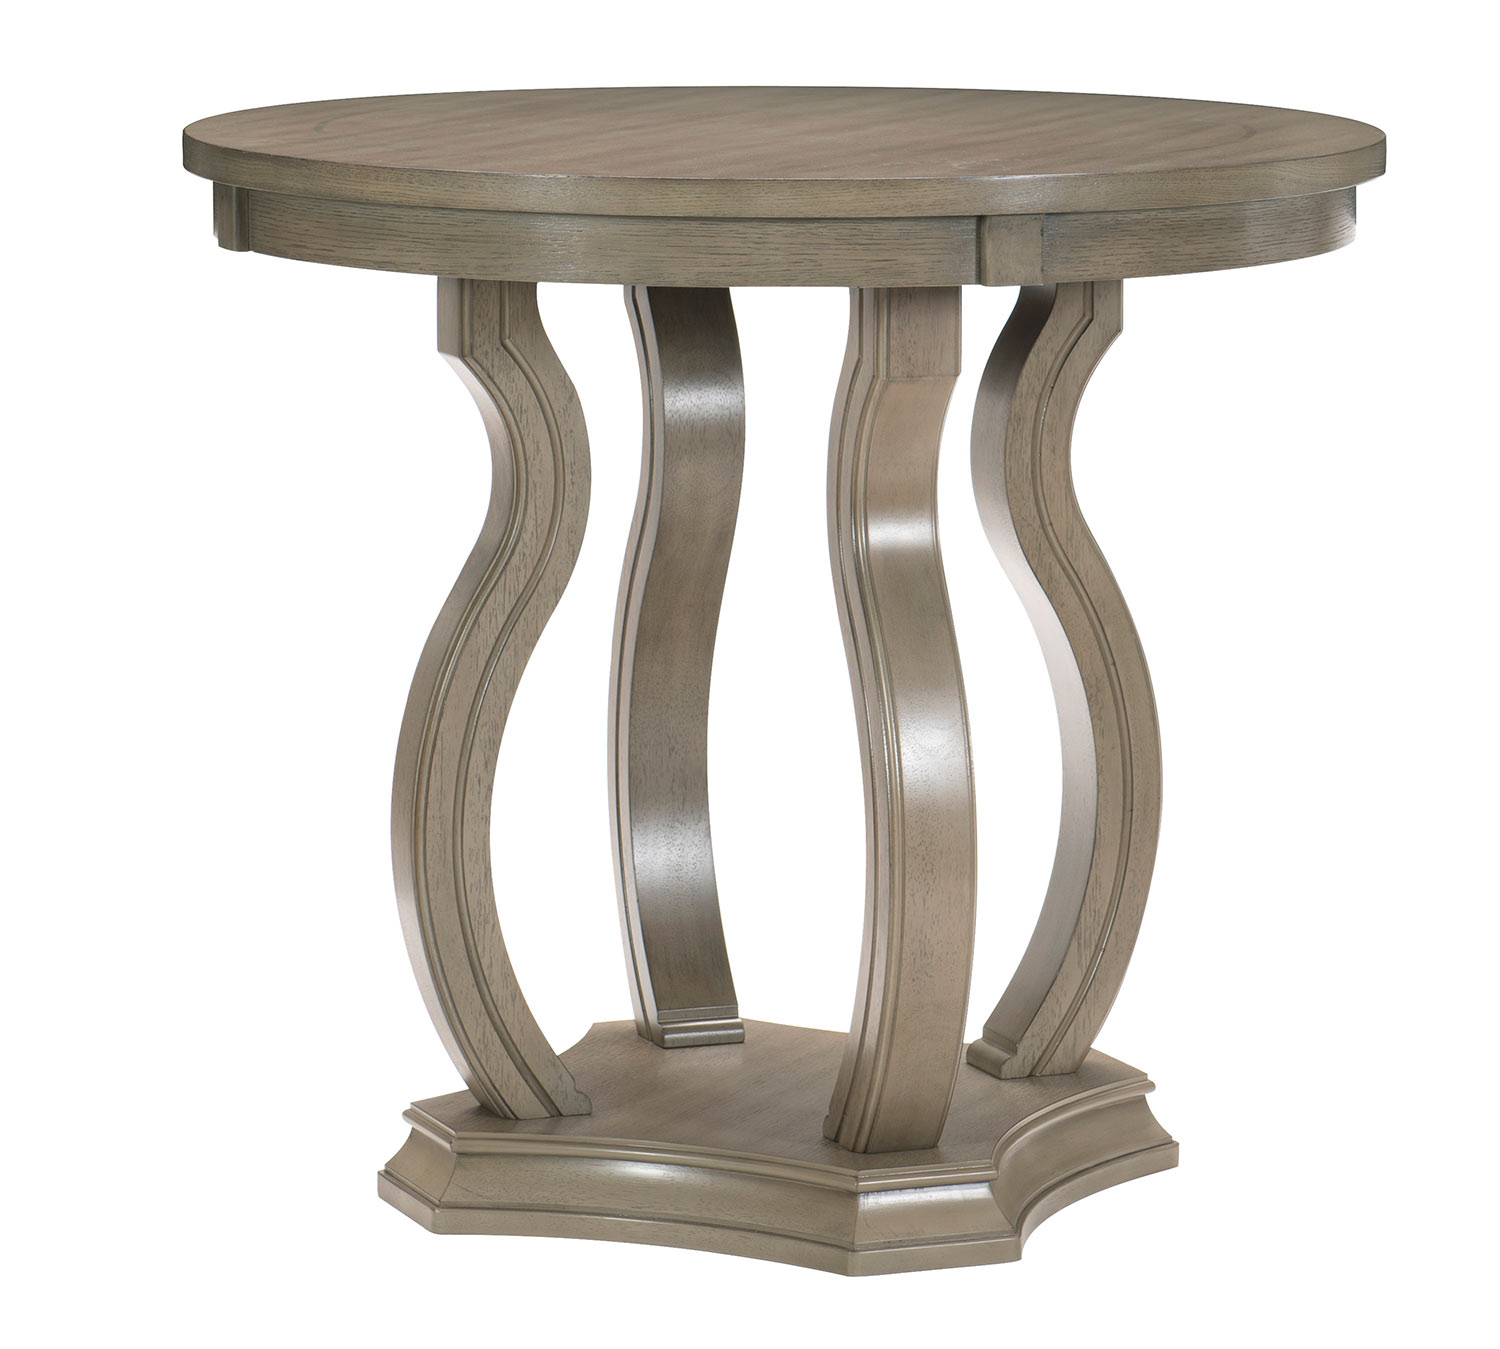 Homelegance Vermillion Counter Height Table - Bisque